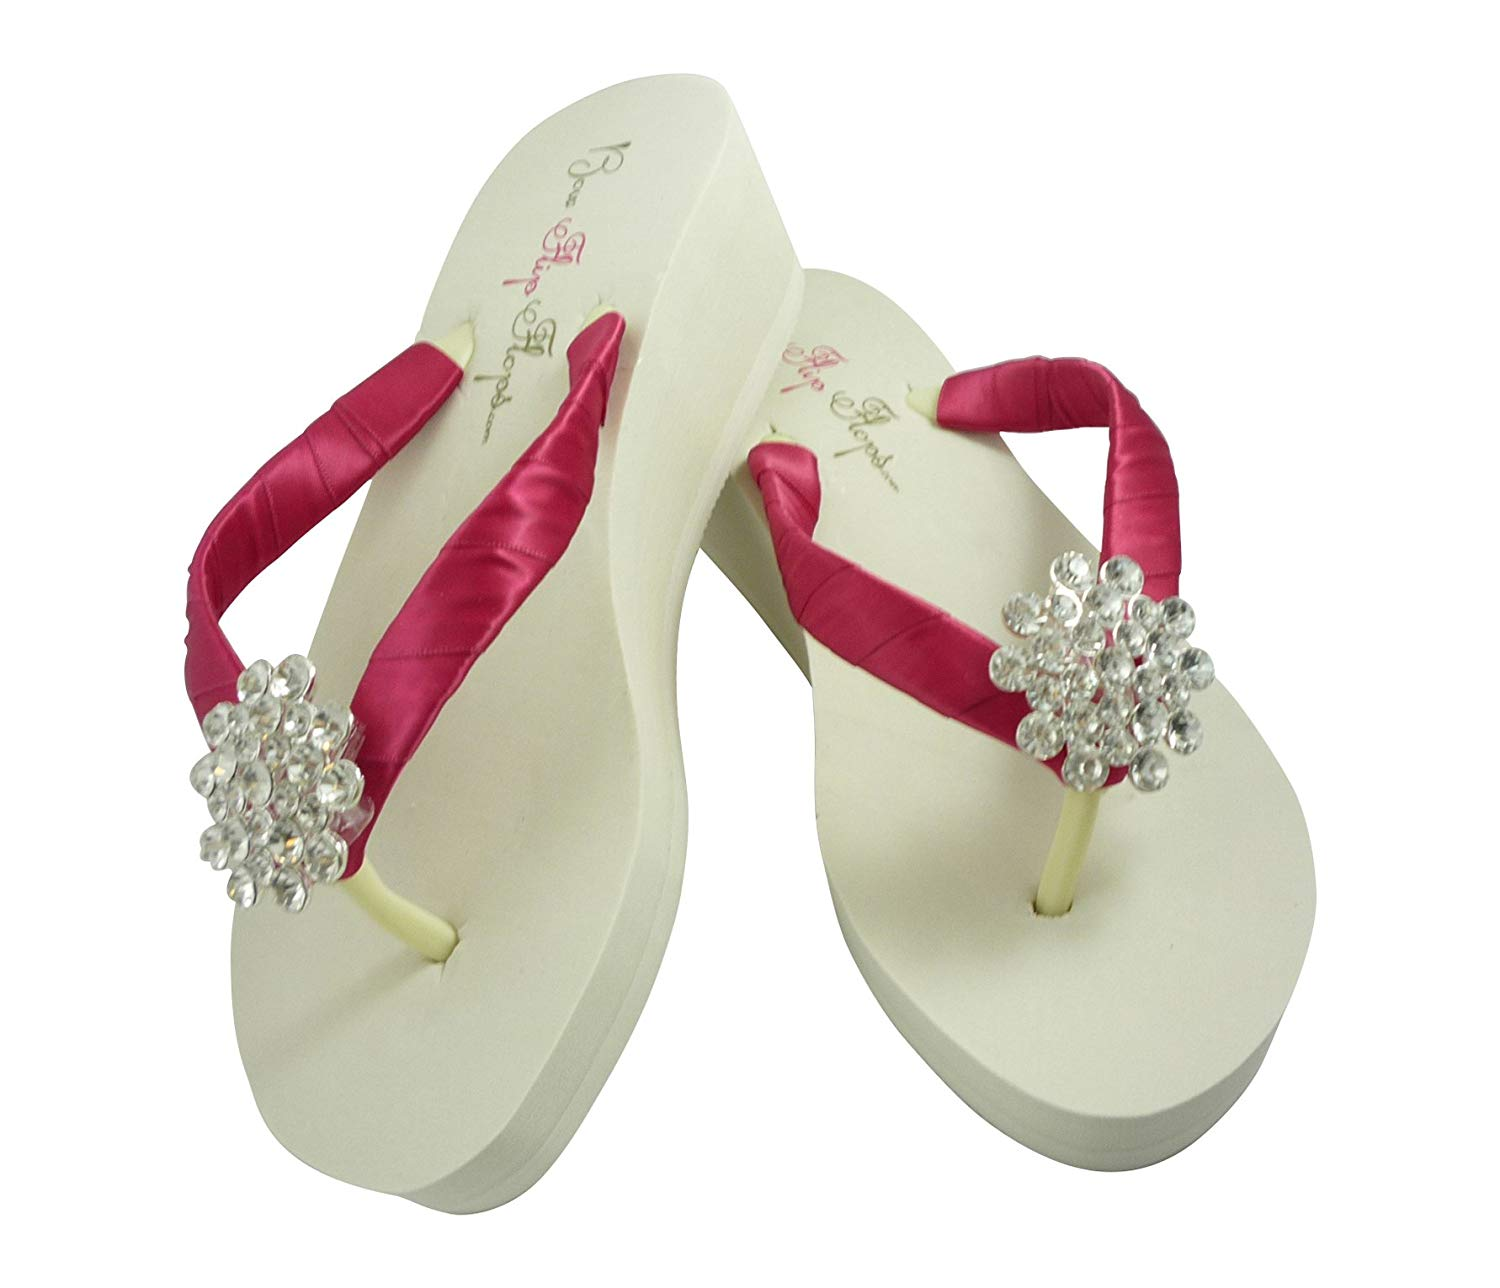 00d22de77 Get Quotations · Wedge 2 inch Flip Flops - Ivory or White Fuchsia Jewel  Embellishment